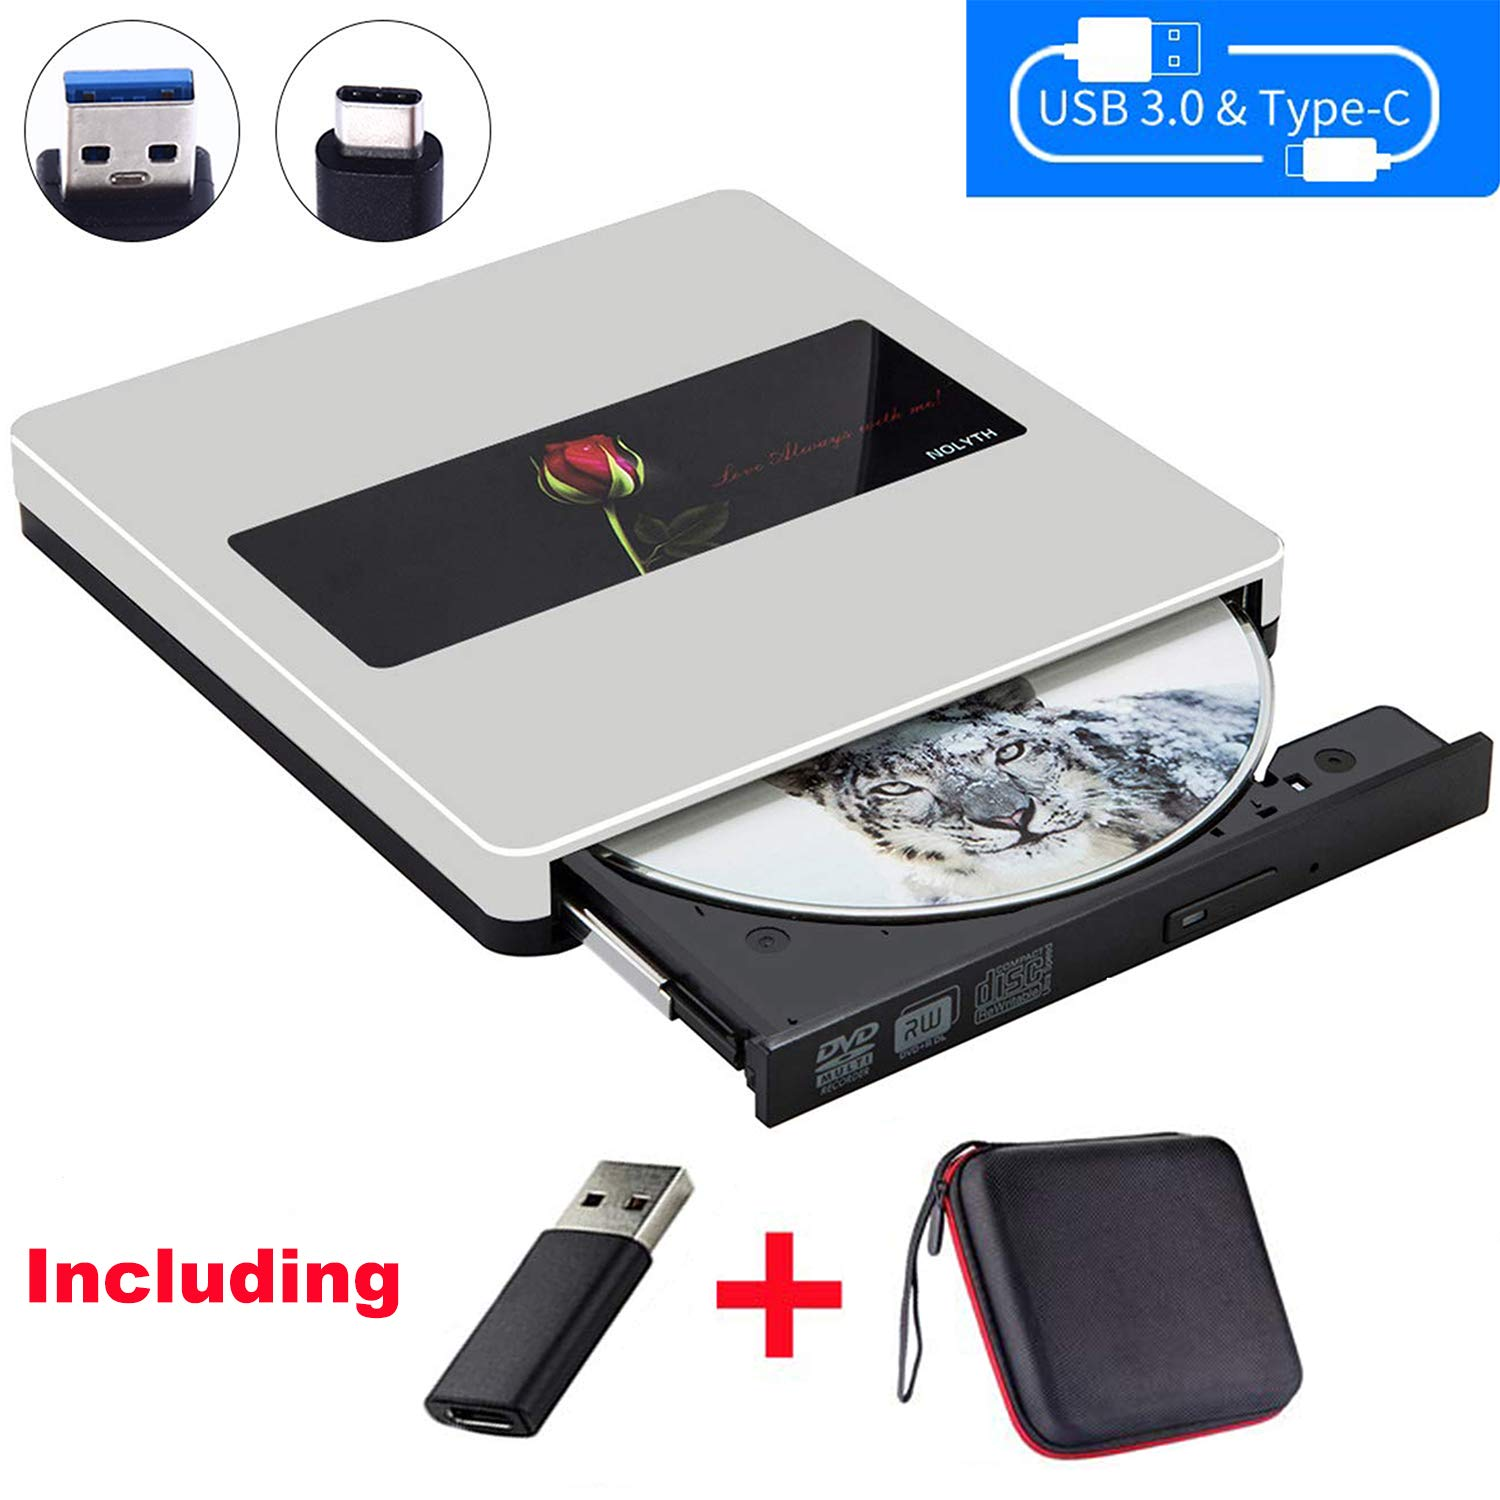 NOLYTH External CD DVD Drive USB3.0 CD DVD Drive CD DVD Player Burner Optical Drive for Laptop/MacBook Air/Pro/Windows Made with Alumium Alloy Supported DVD±RW/CD±RW by NOLYTH